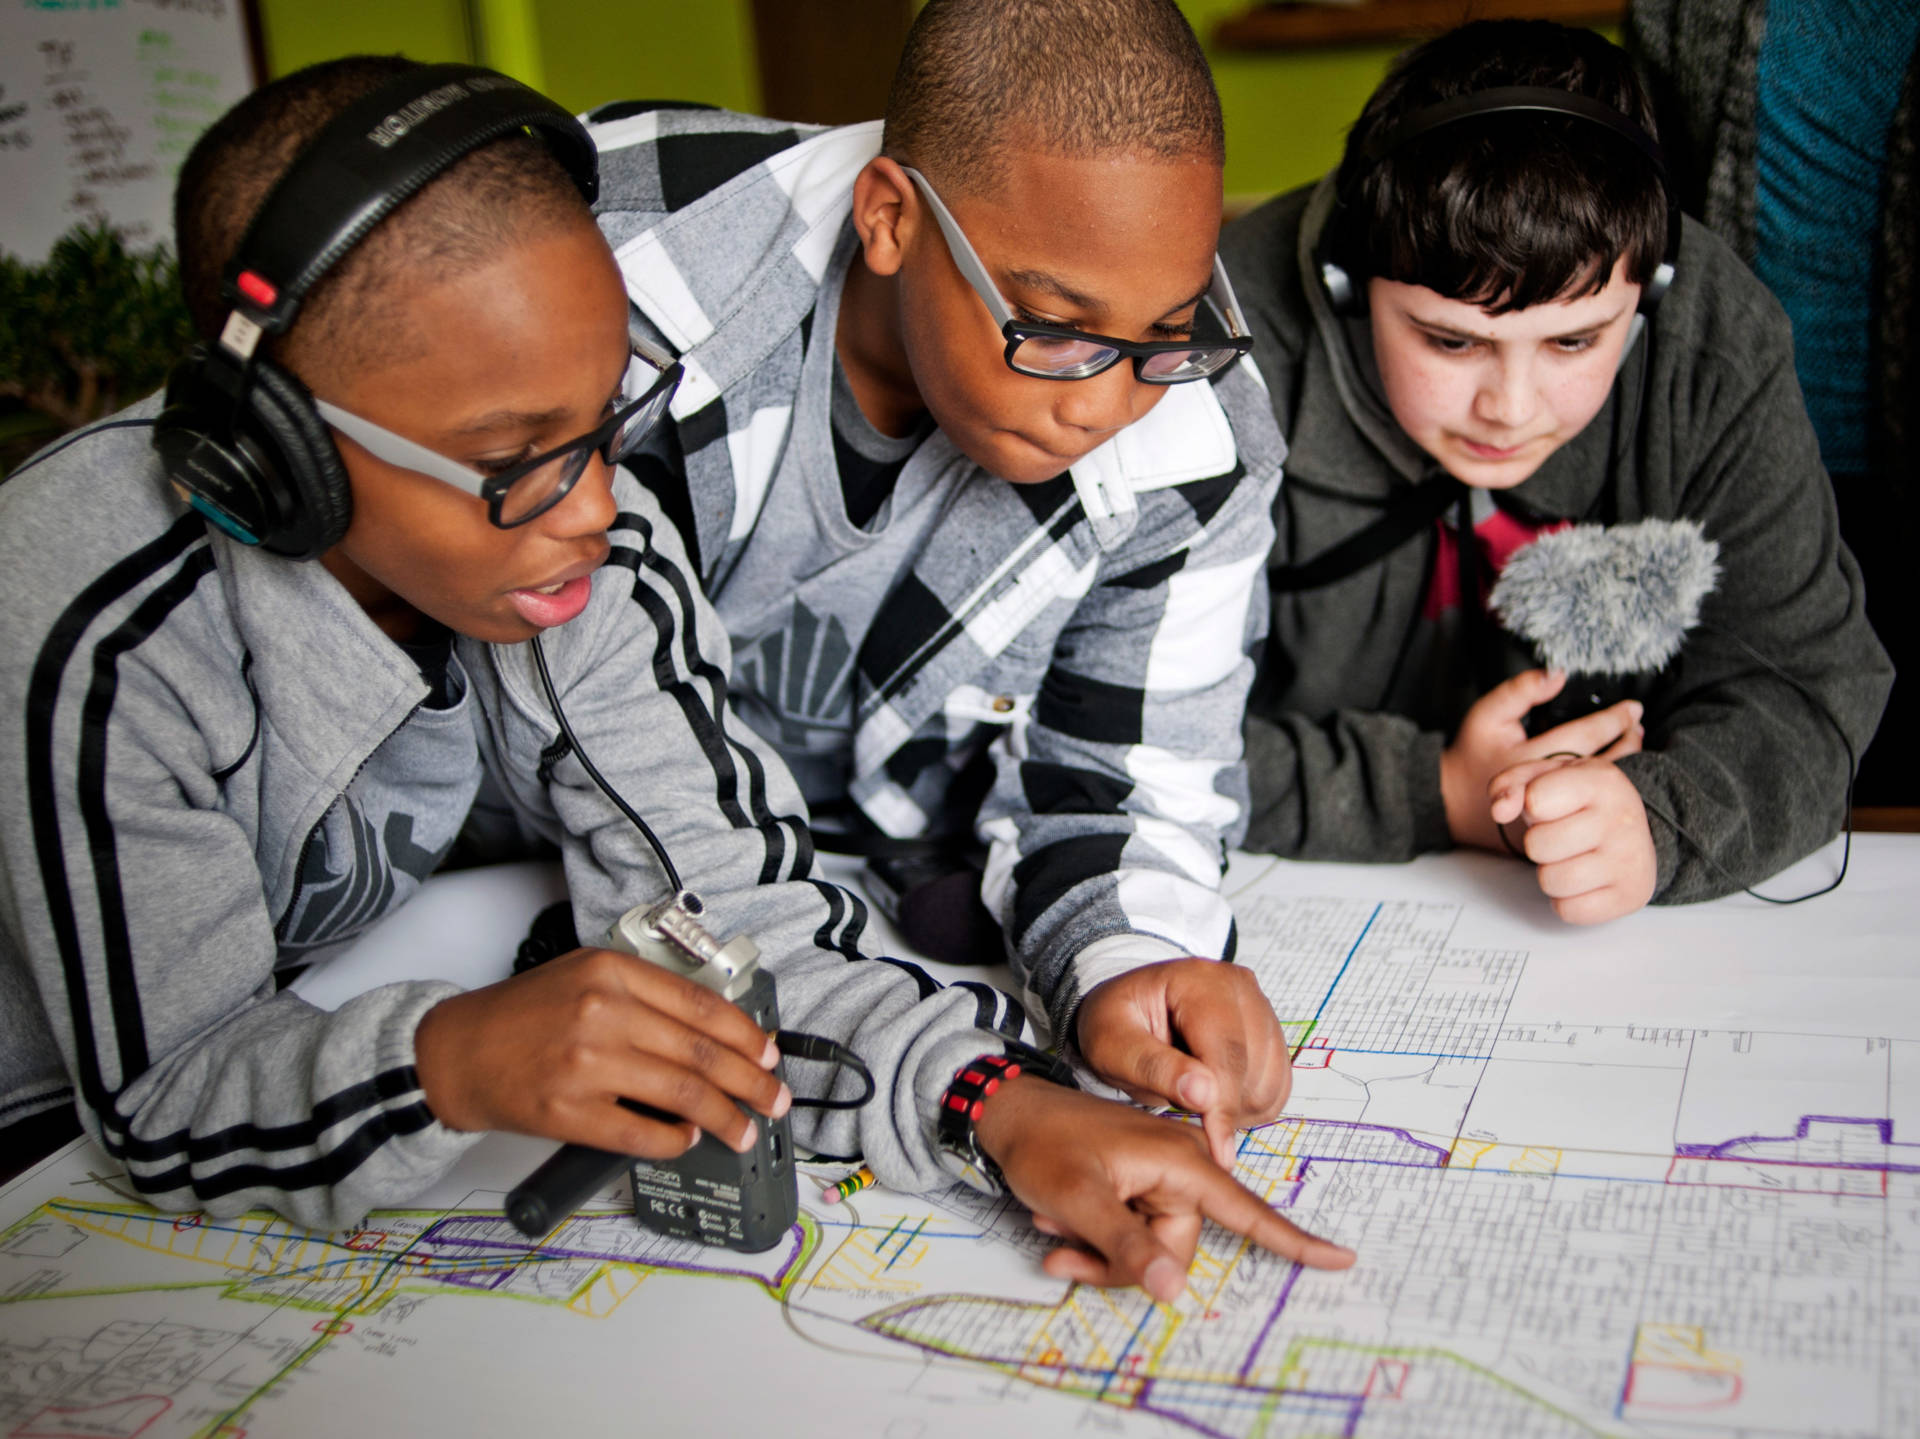 These Teens Started Podcasting As A Hobby, Then It Turned Into Serious Journalism